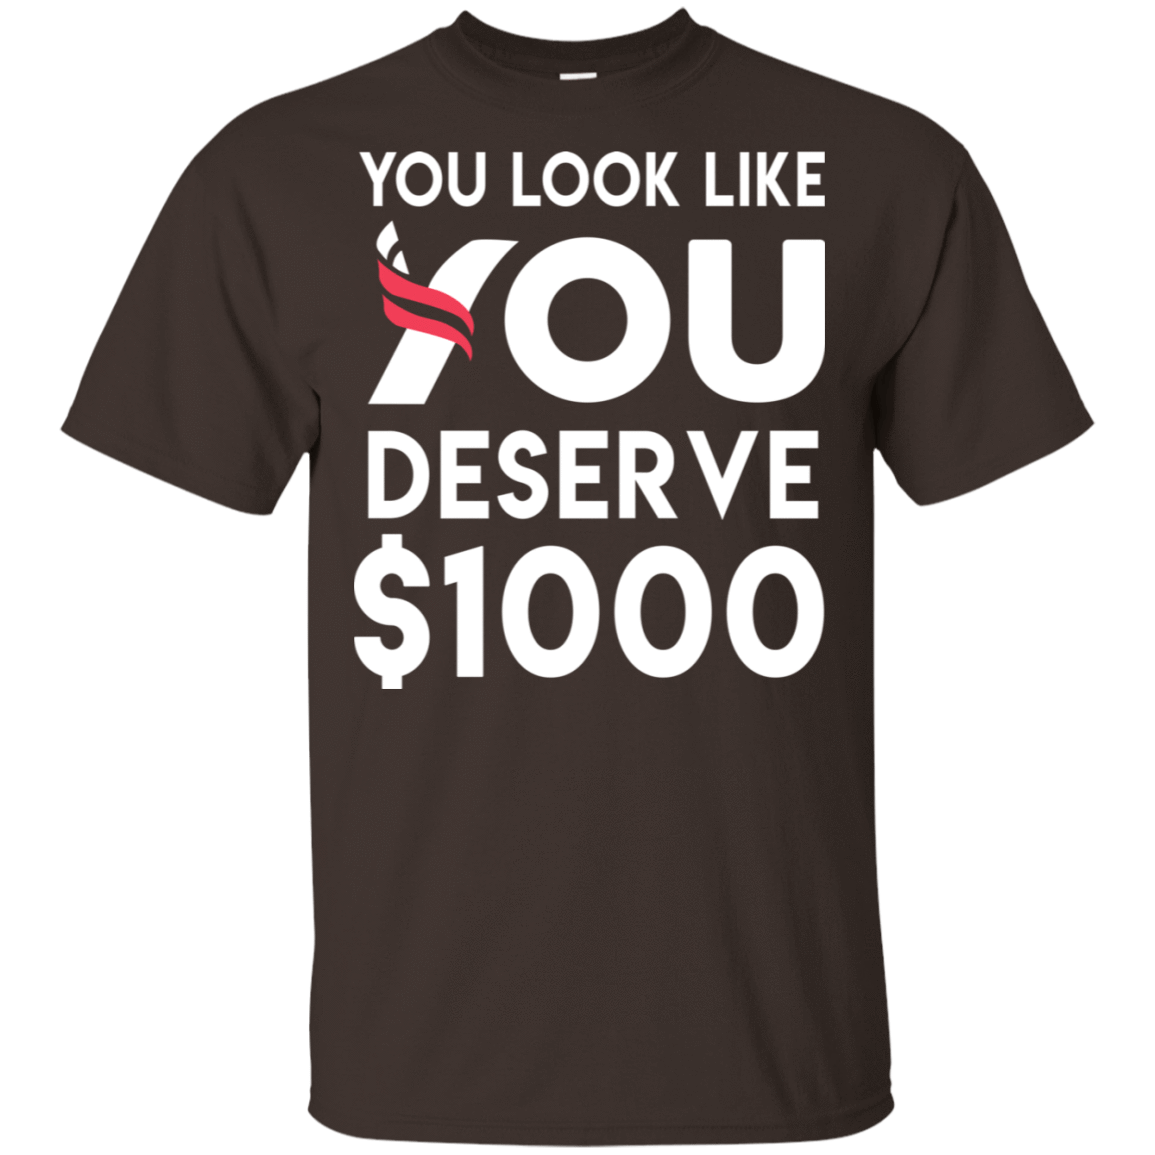 You Look Like You Deserve $1000 22-2283-74096745-12087 - Tee Ript